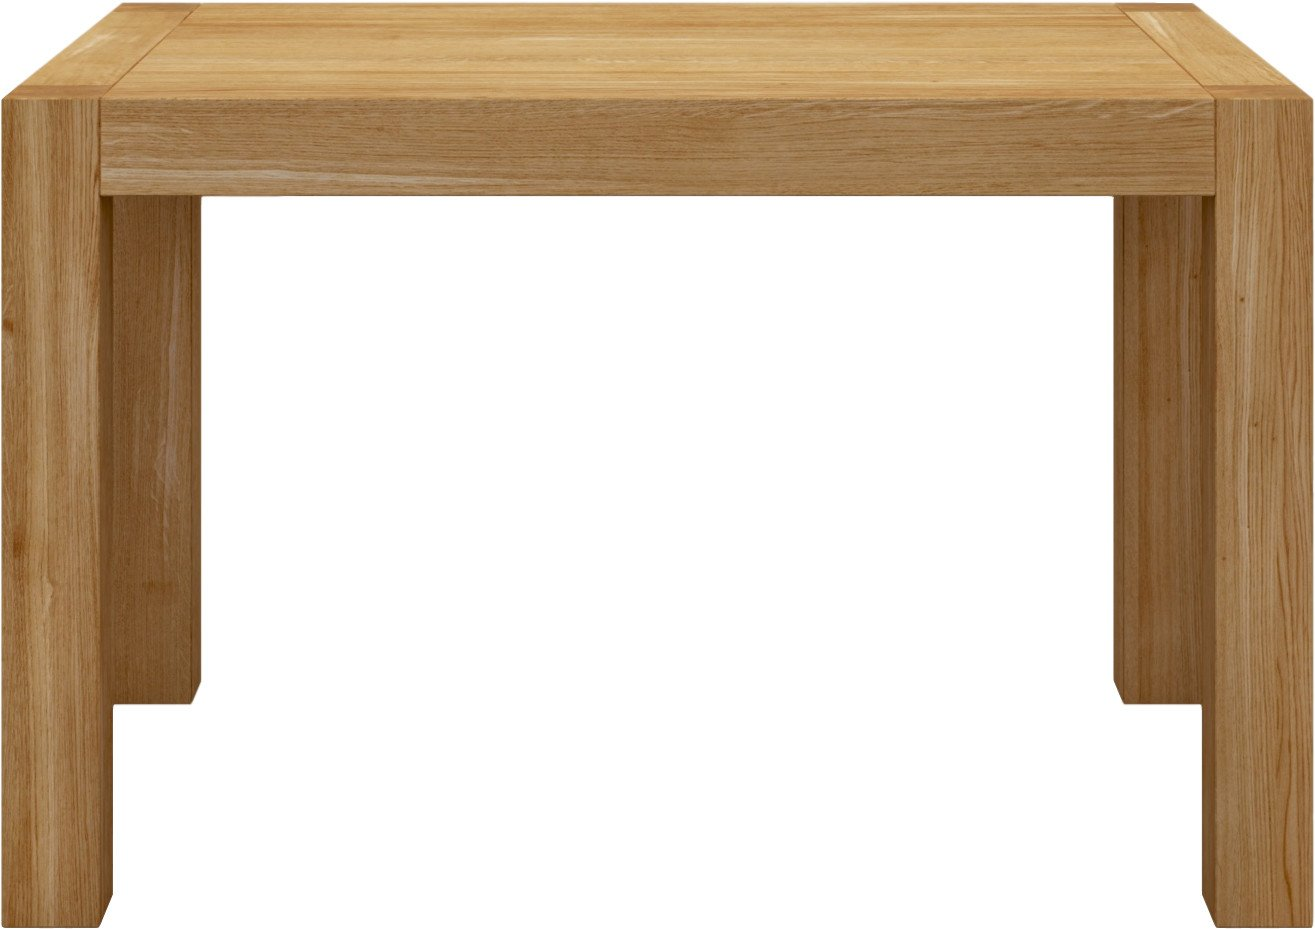 Blox Table Natural 120x80, Miloni